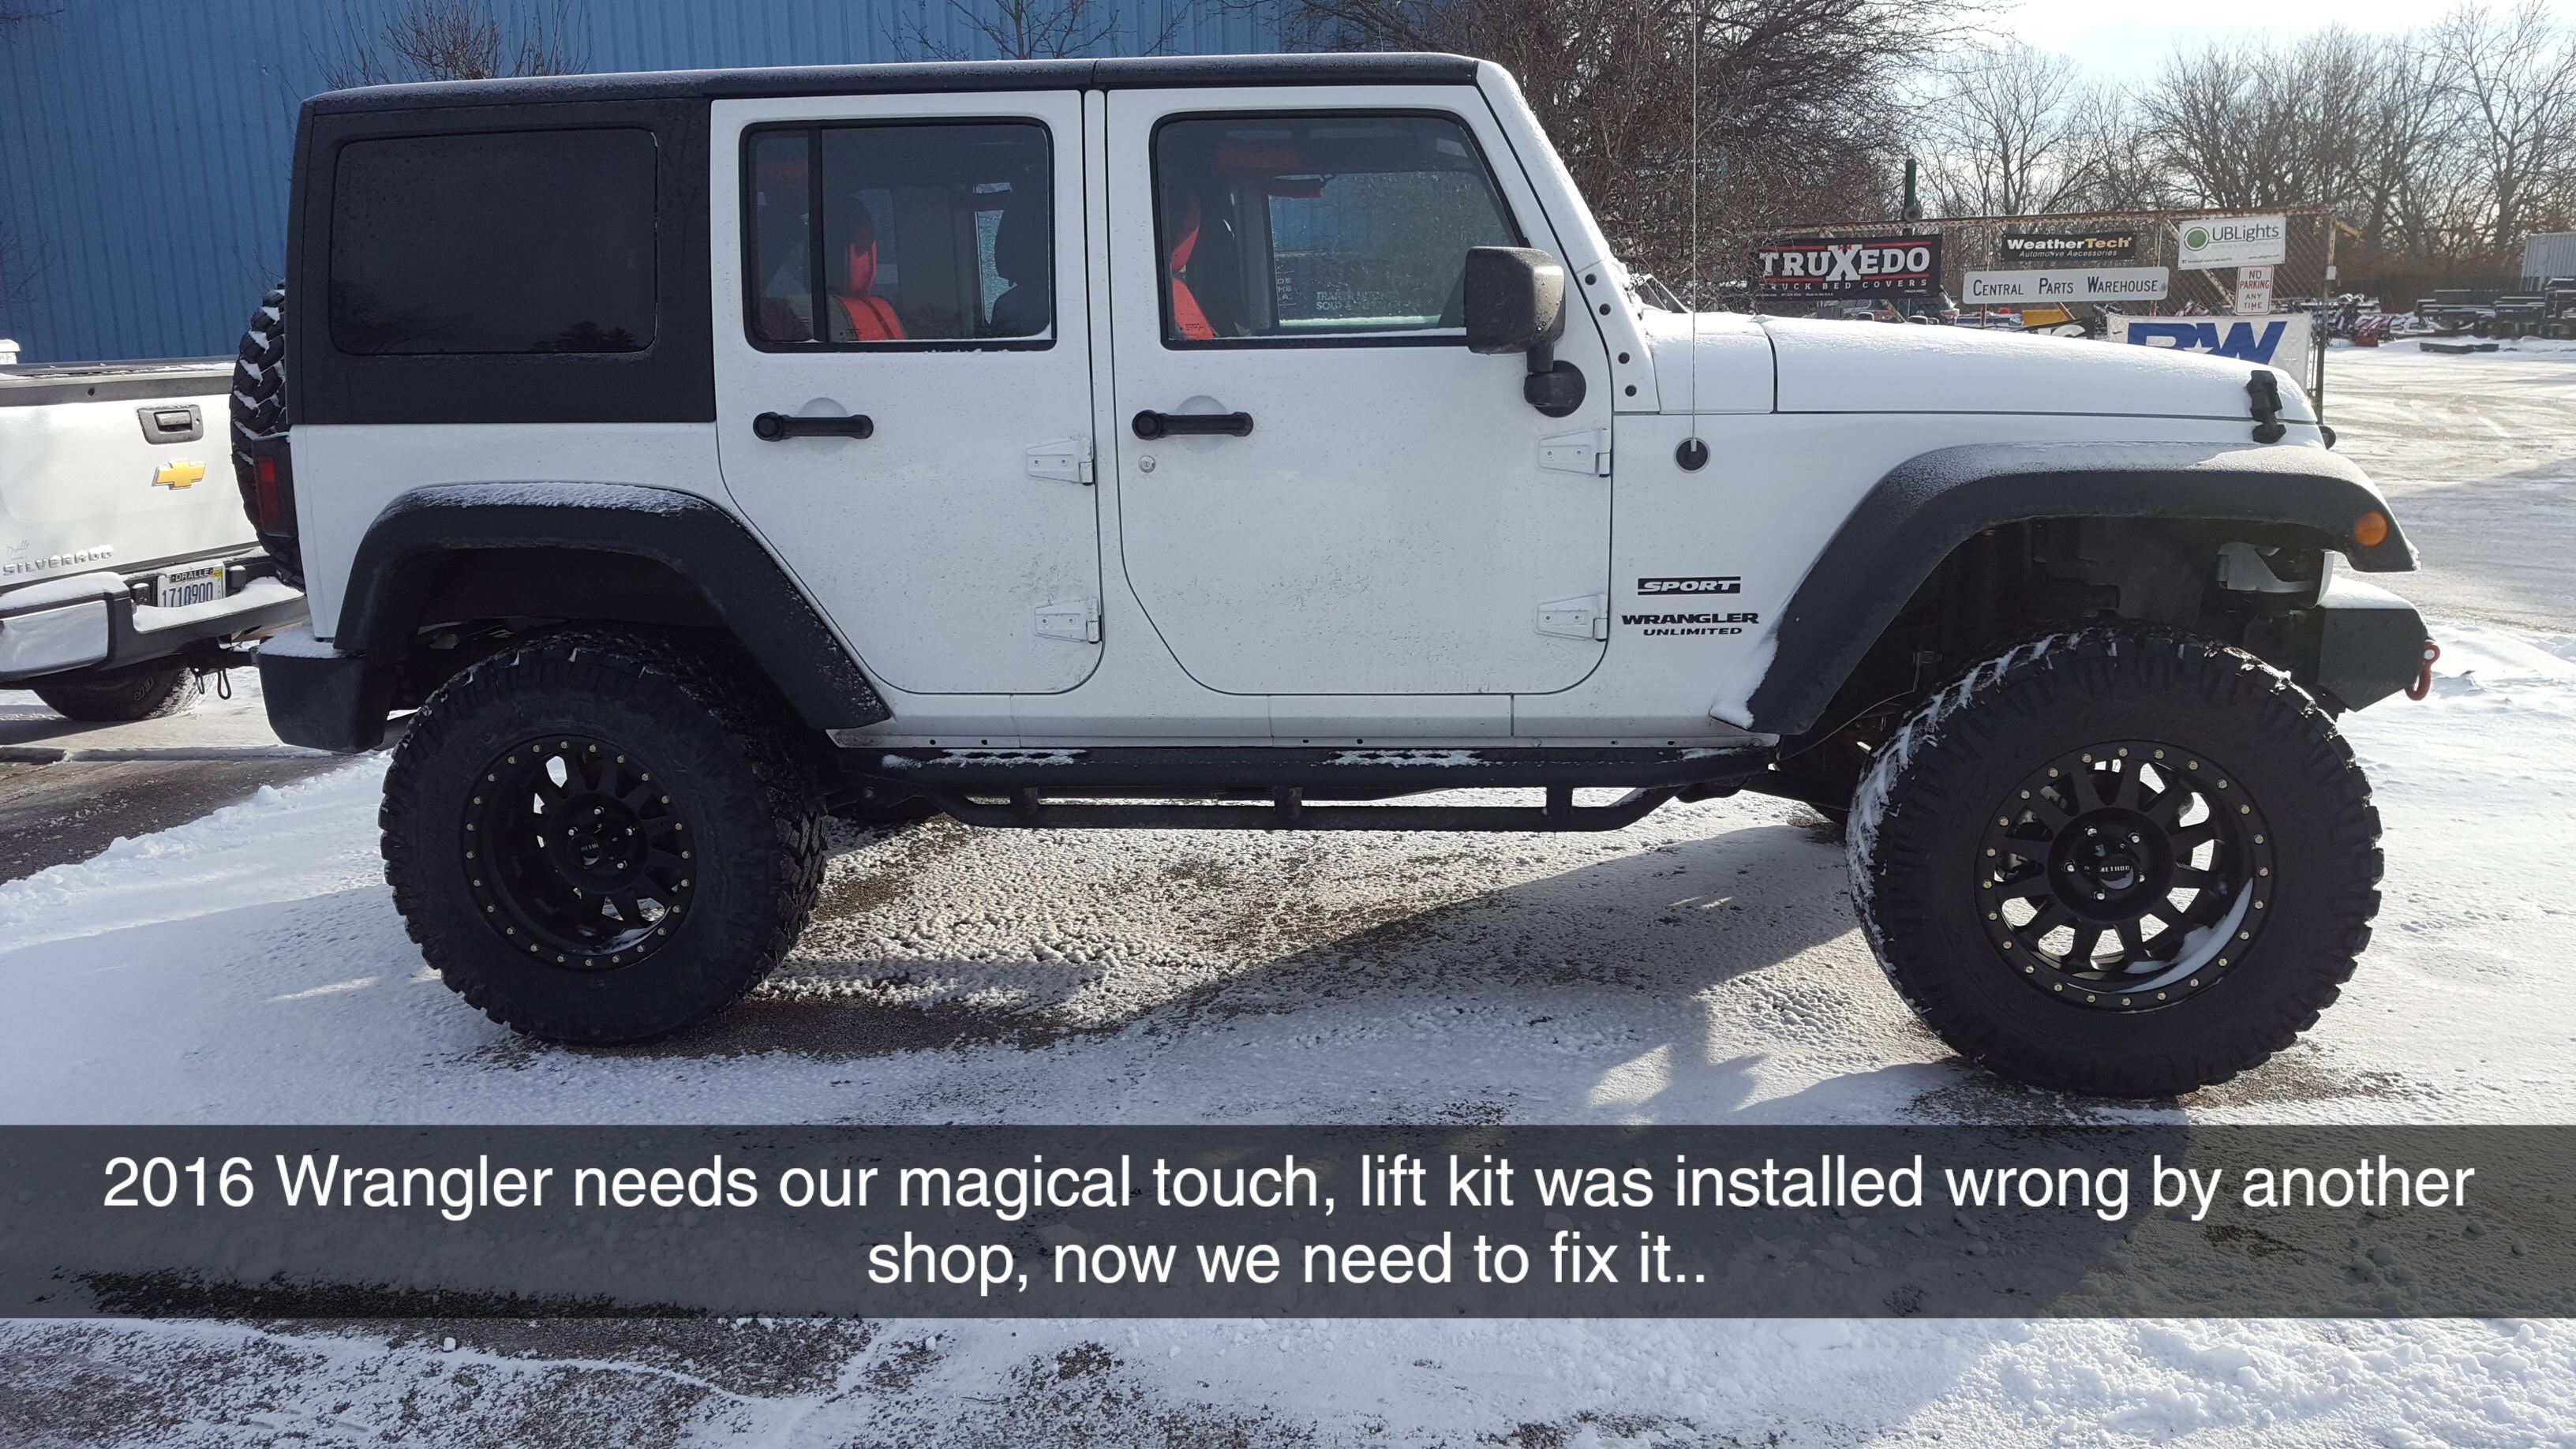 2016 Jeep Wrangler Lift Kit Installation we needed to fix from another shop